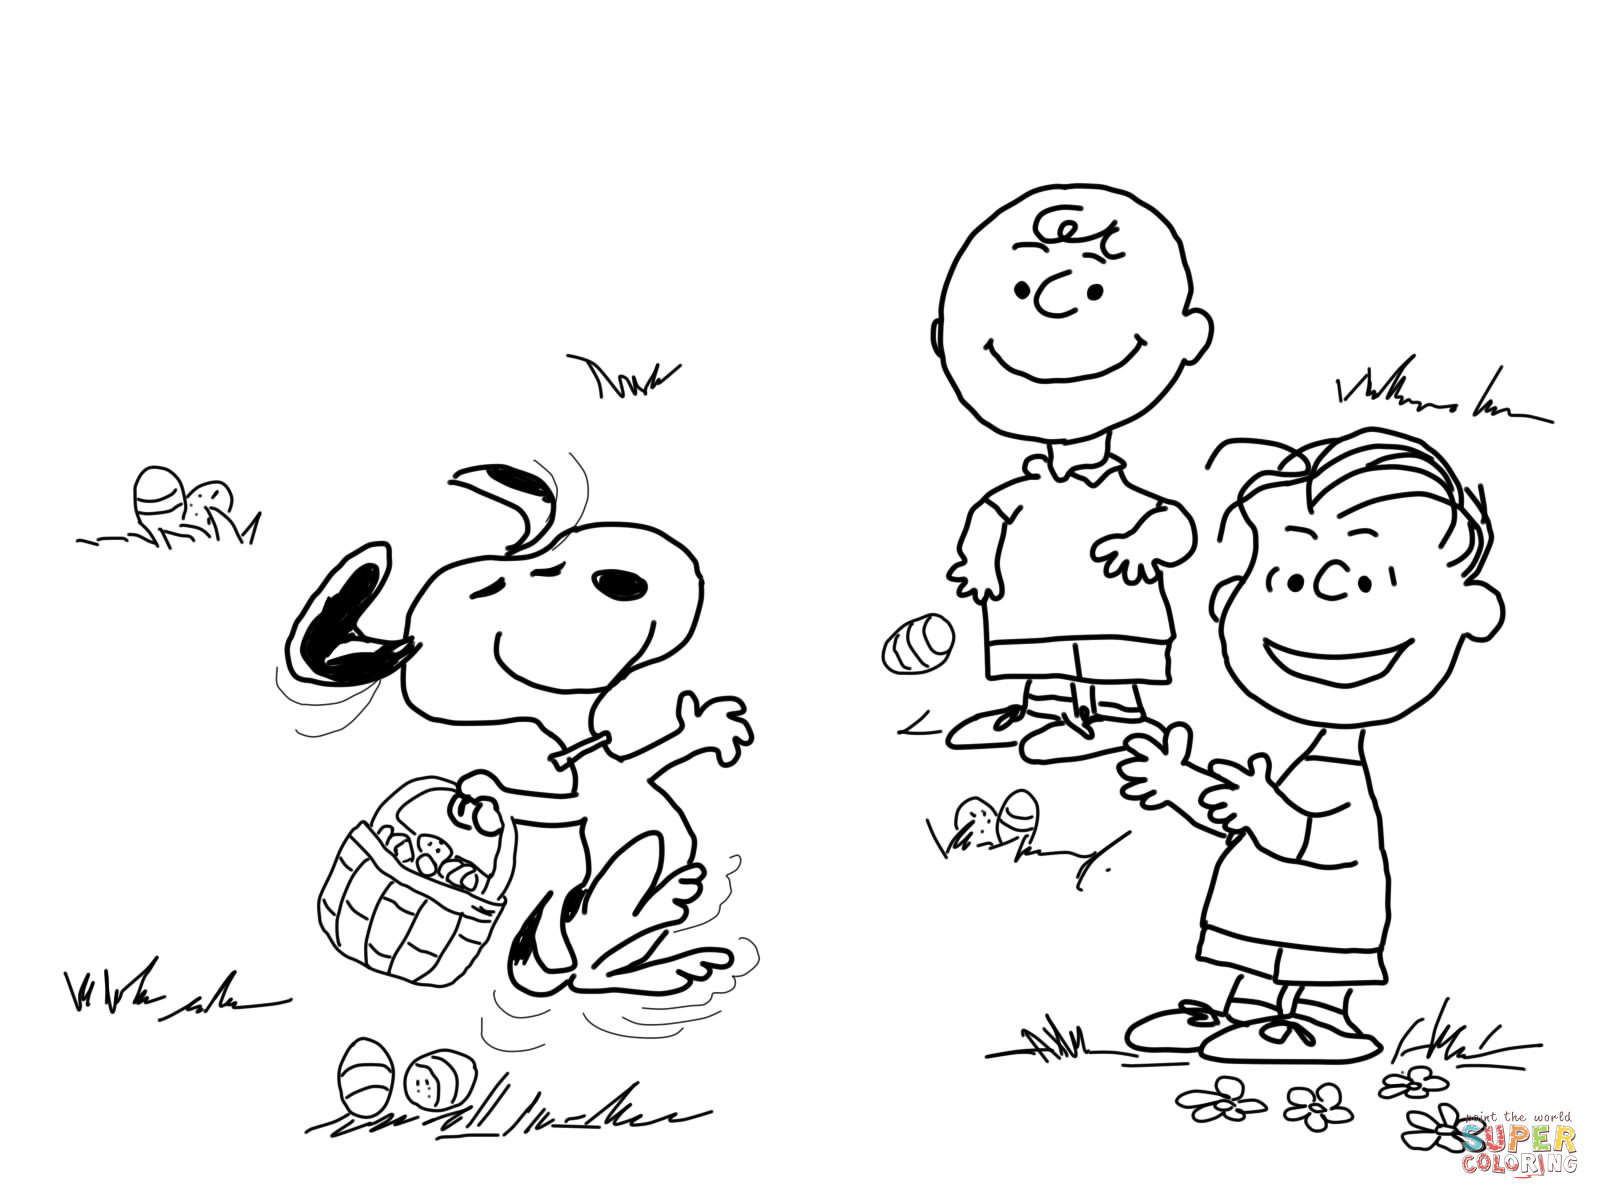 charlie brown easter coloring page free printable coloring pages - Snoopy Friends Coloring Pages